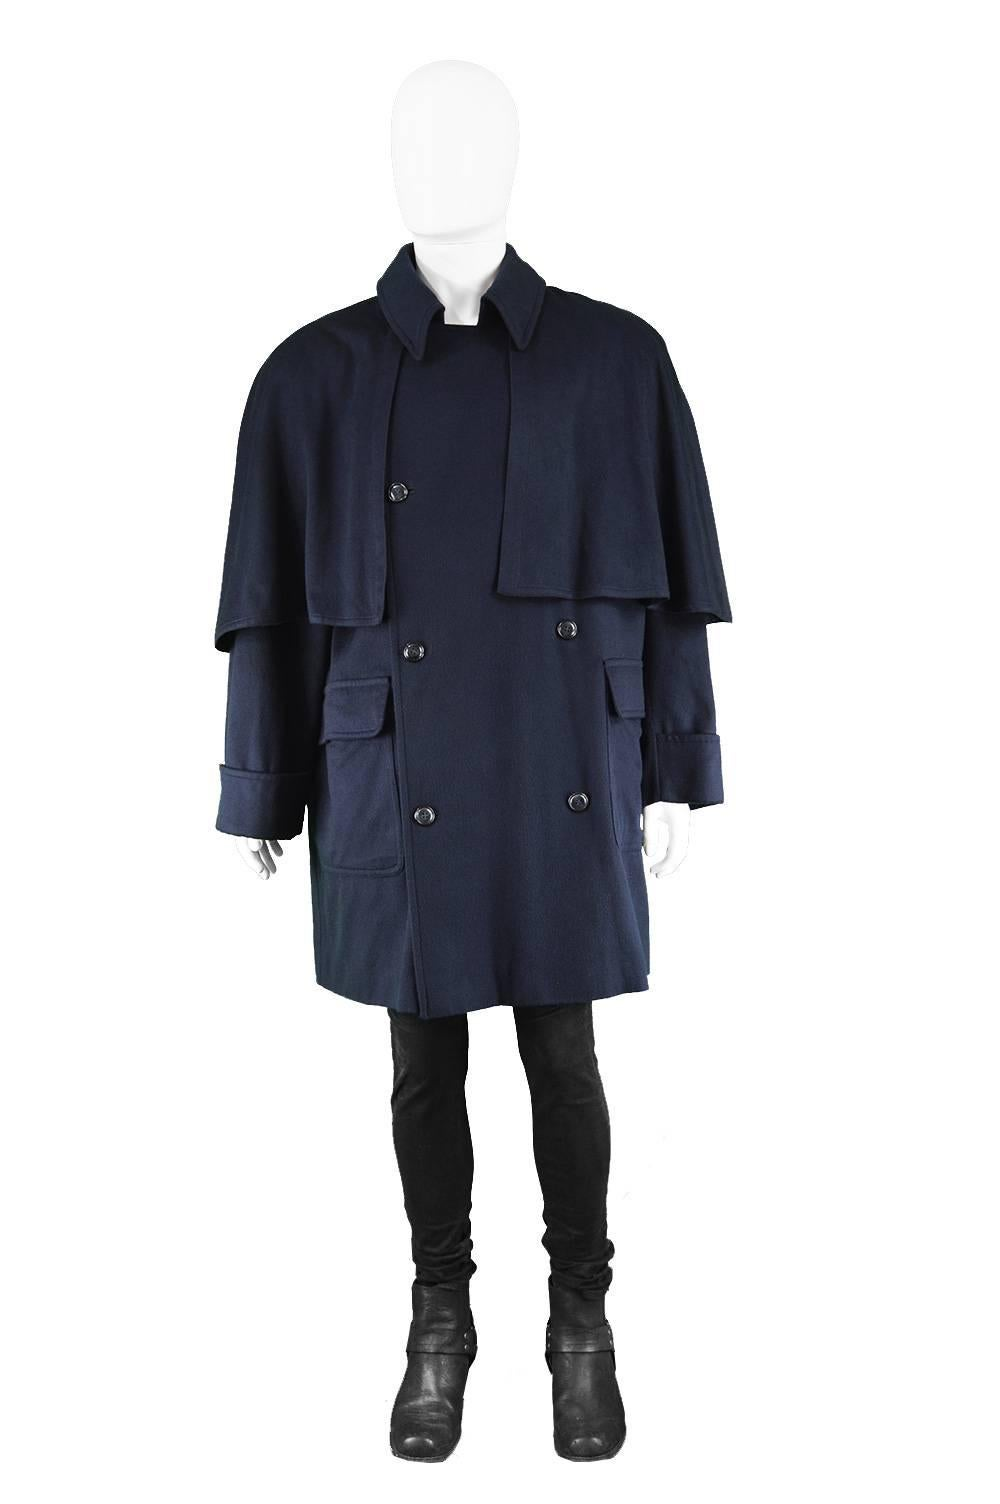 Valentino Boutique Menu0027s Cashmere u0026 Wool Vintage Cape Overcoat, 1980s Size:  Marked 50 which